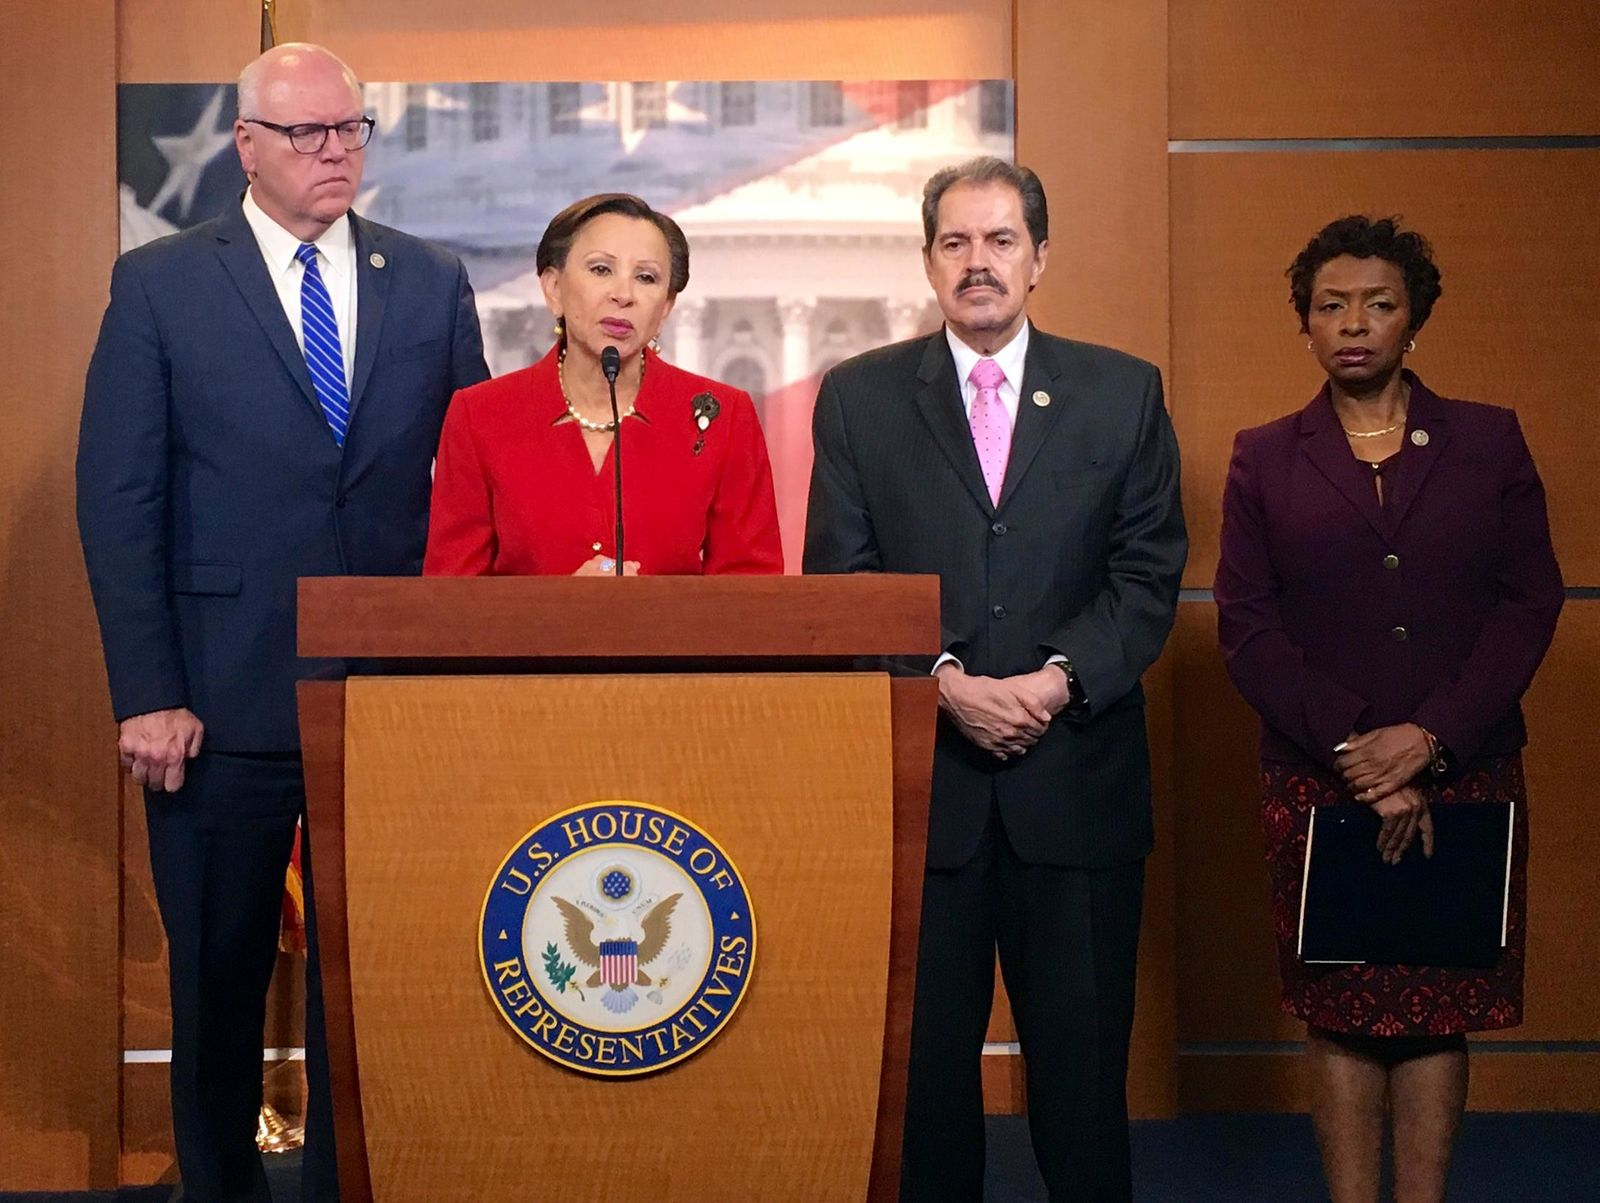 From left, New York Reps. Joe Crowley, Nydia Velazquez, Jose Serrano and Yvette Clarke talk about the damage in Puerto Rico caused by Hurricane Maria on Capitol Hill in Washington, Tuesday, Sept. 26, 2017. (AP Photo/Matthew Daly)